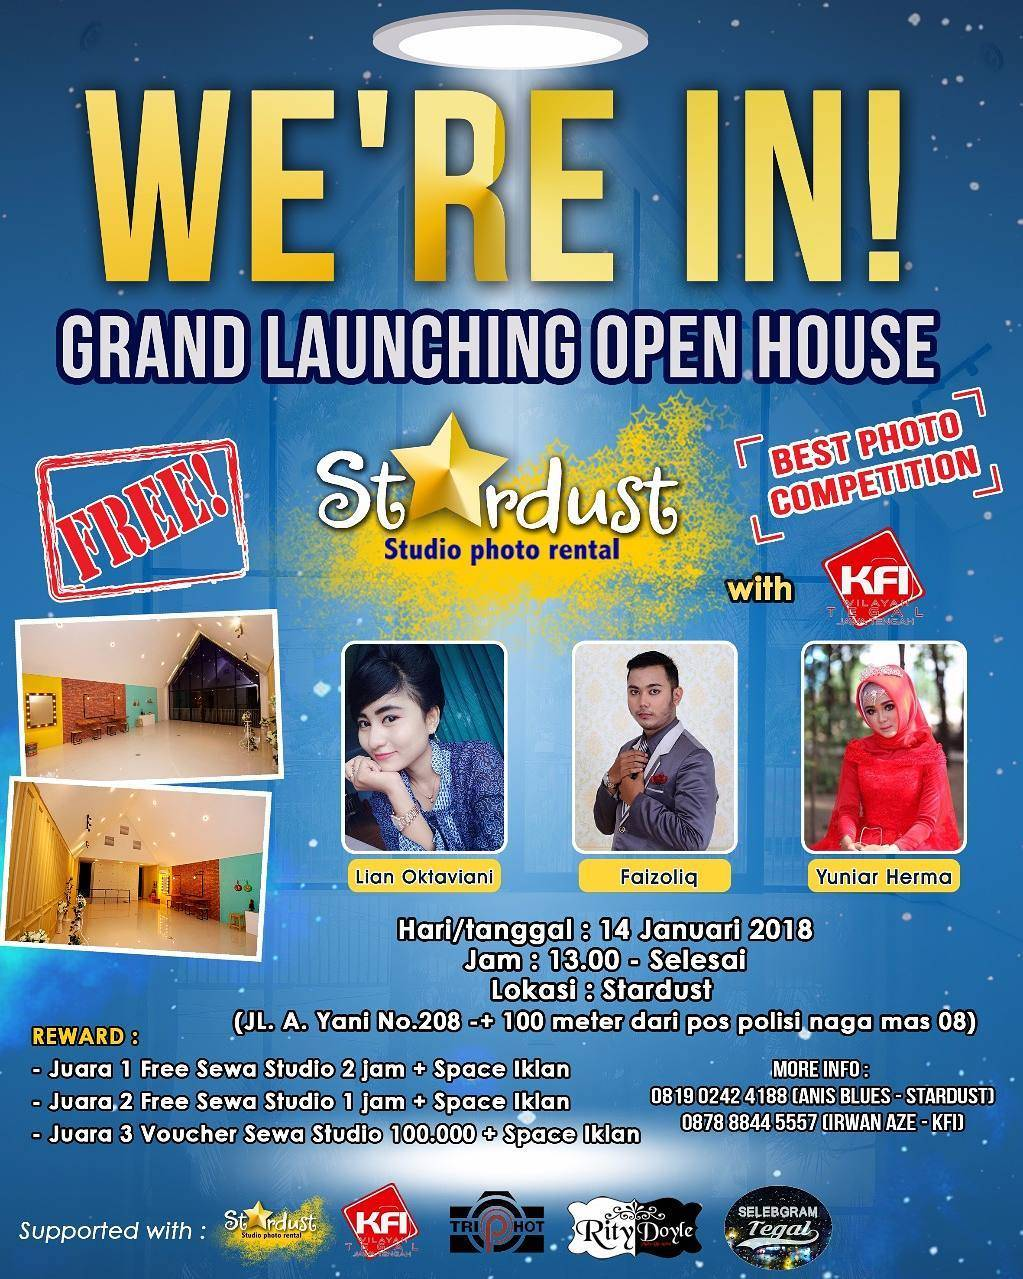 EVENT GRAND LAUNCHING OPEN HOUSE